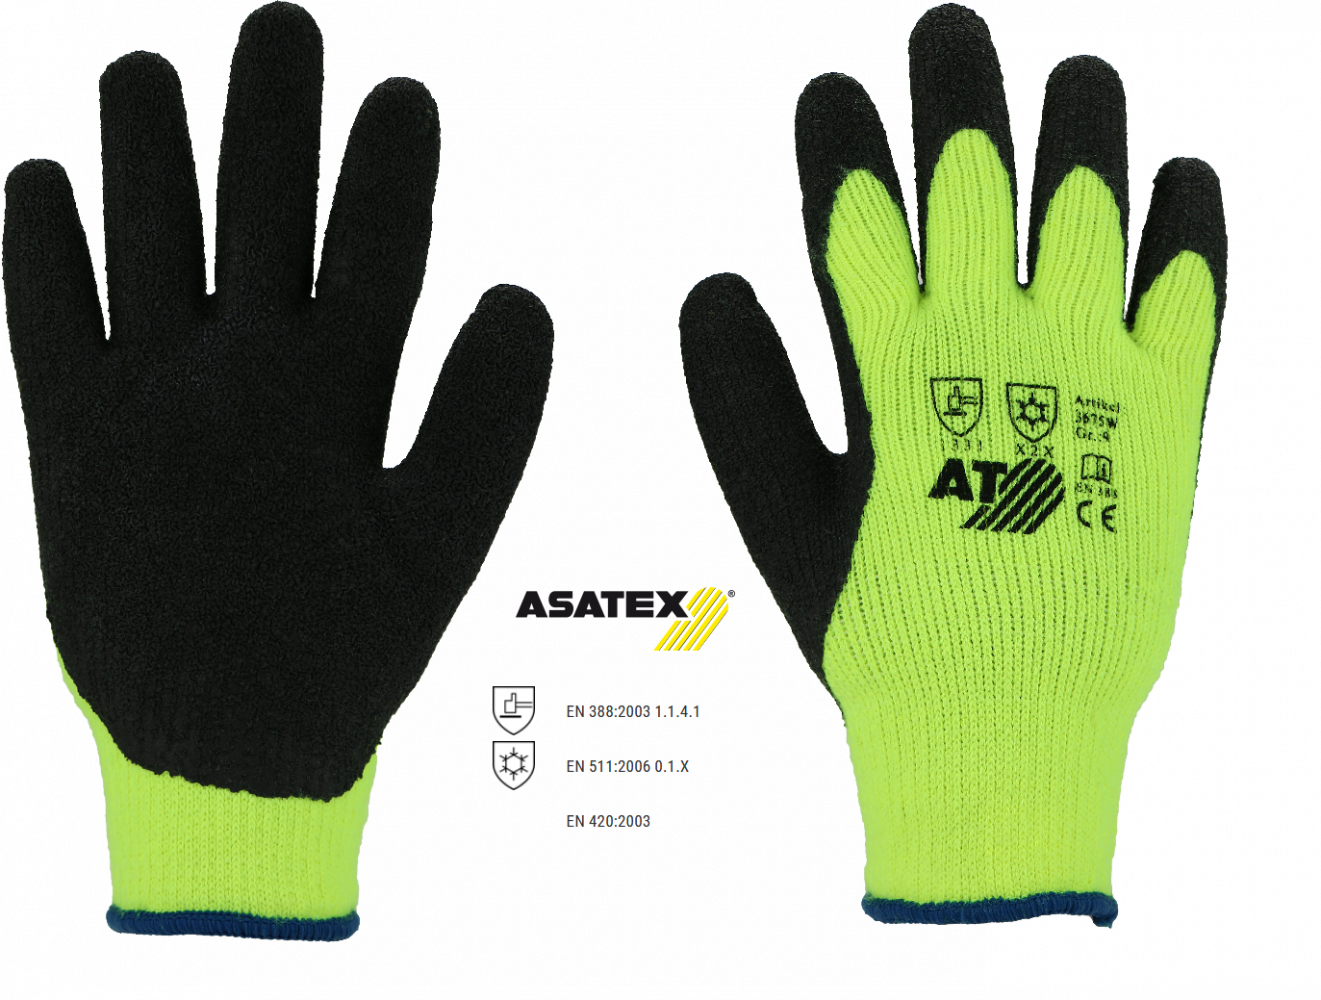 pics/Asatex/asatex-winter-gloves-3675w.png